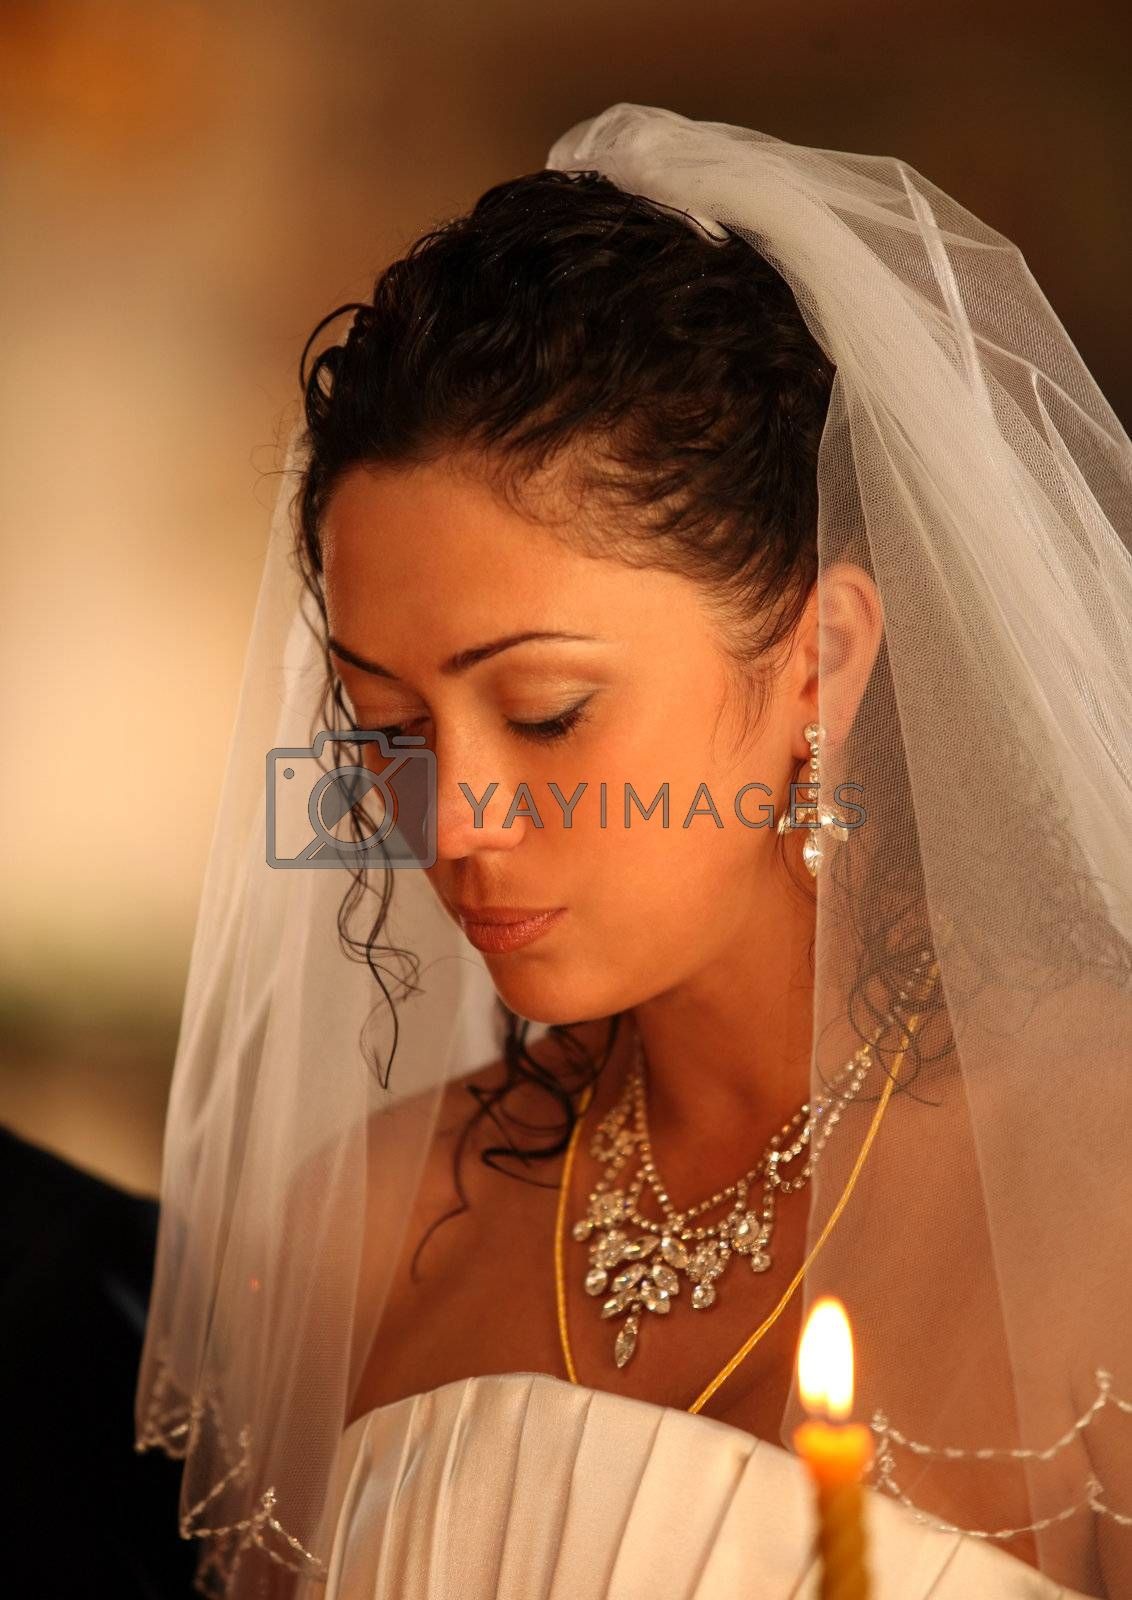 The bride on ceremony of wedding - internal church